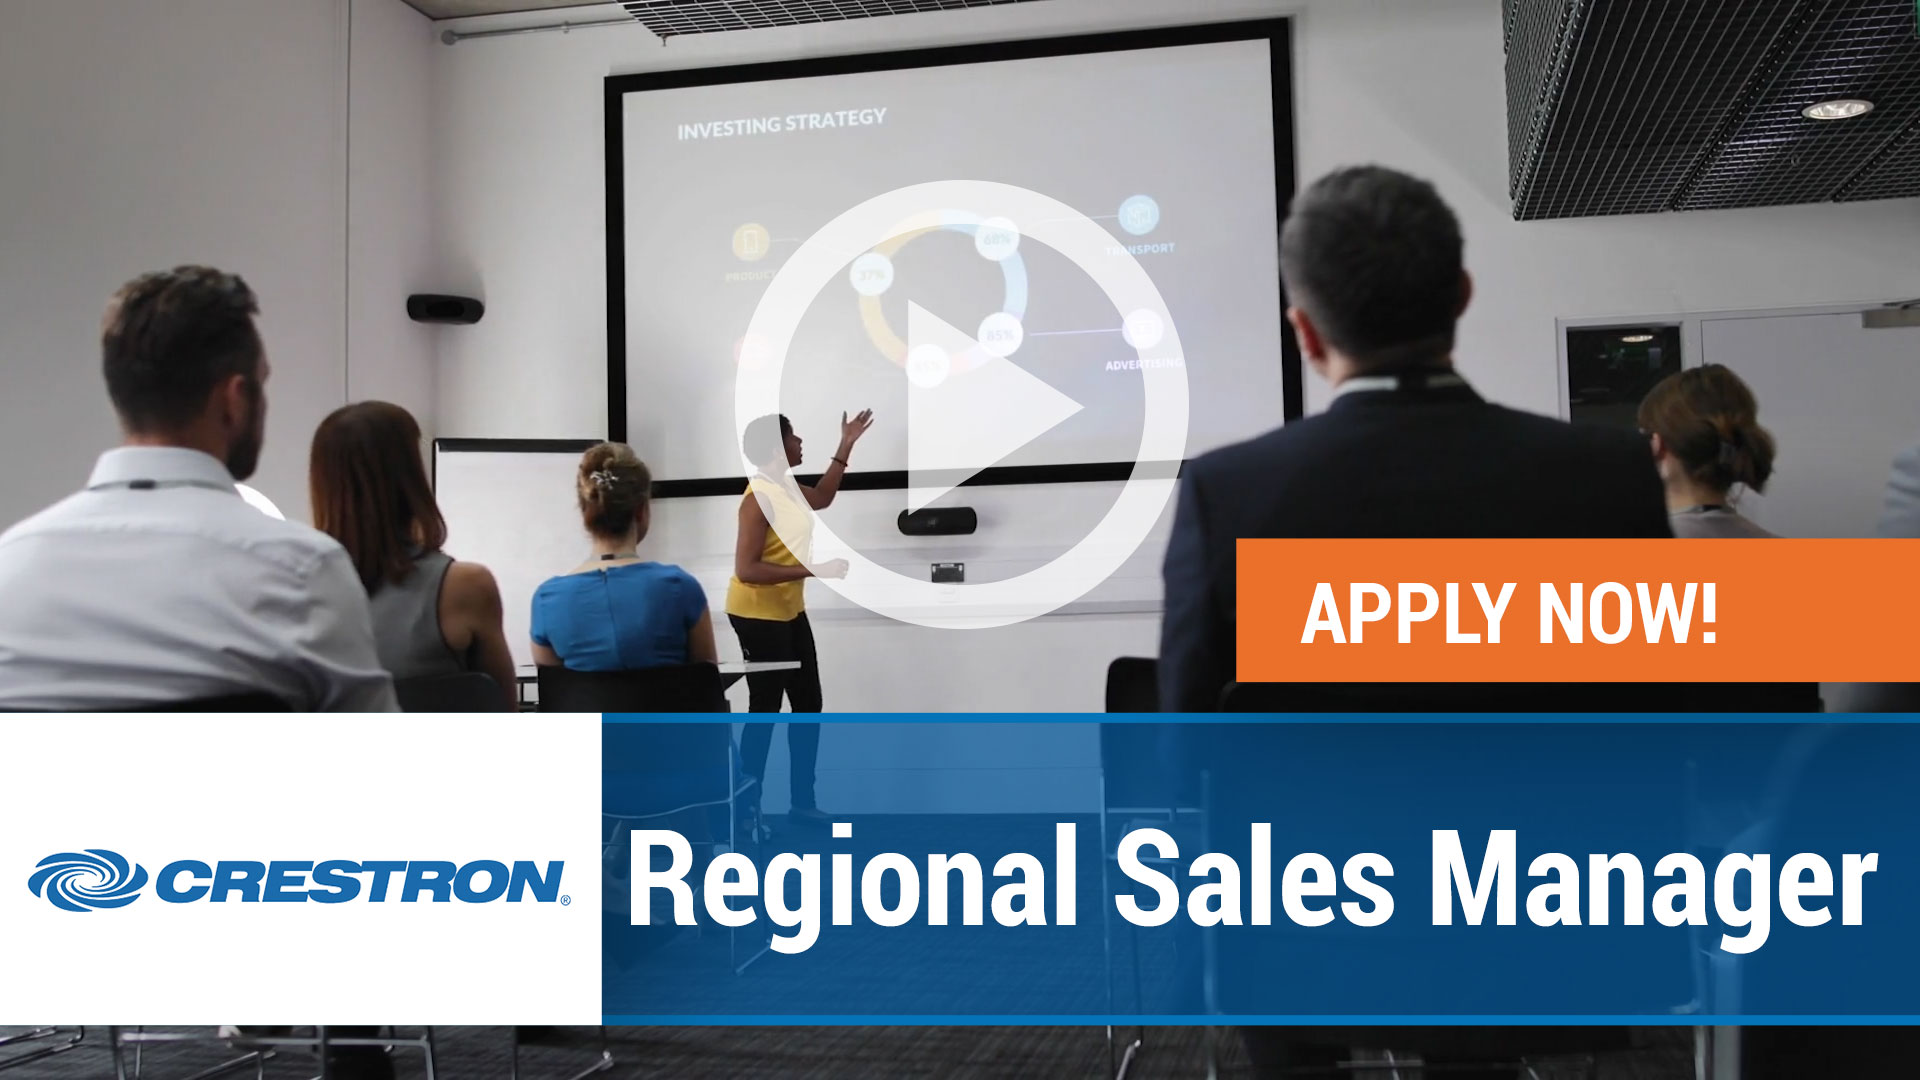 Watch our careers video for available job opening Regional Sales Manager in Rockleigh, NJ, USA